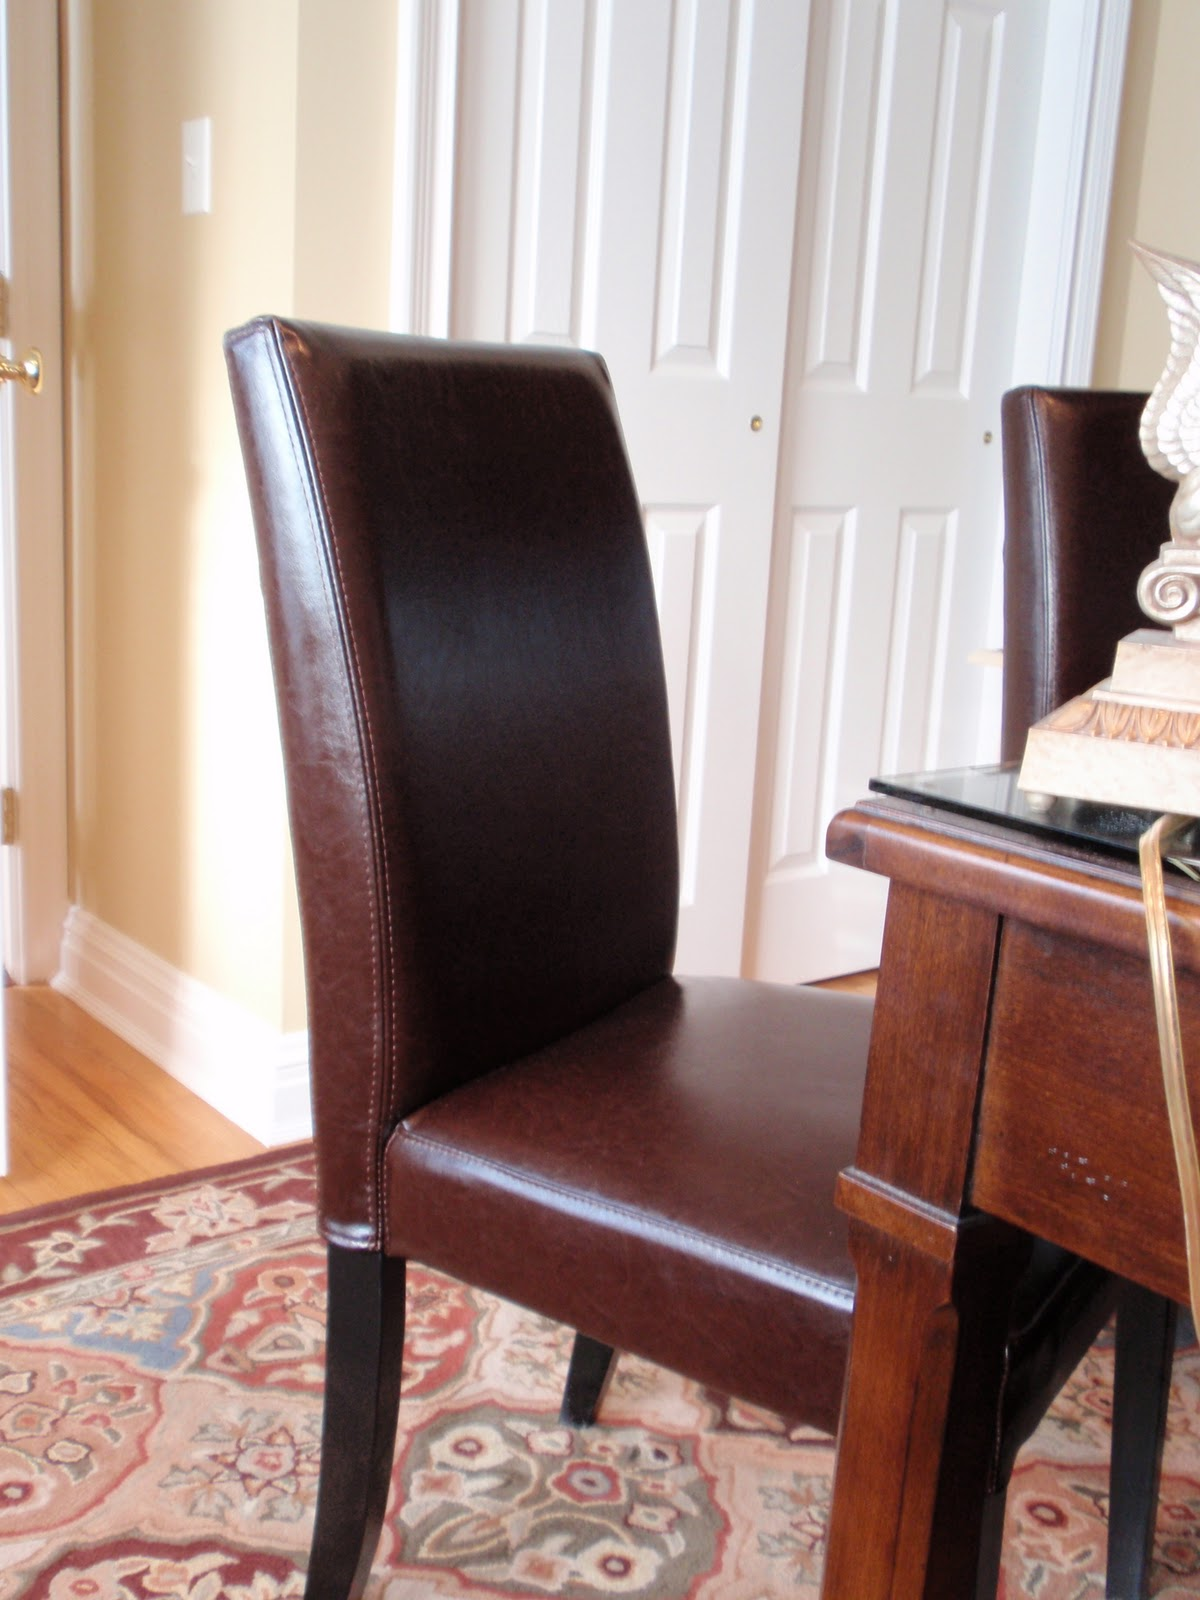 office chair qvc toilet lift diy by design home